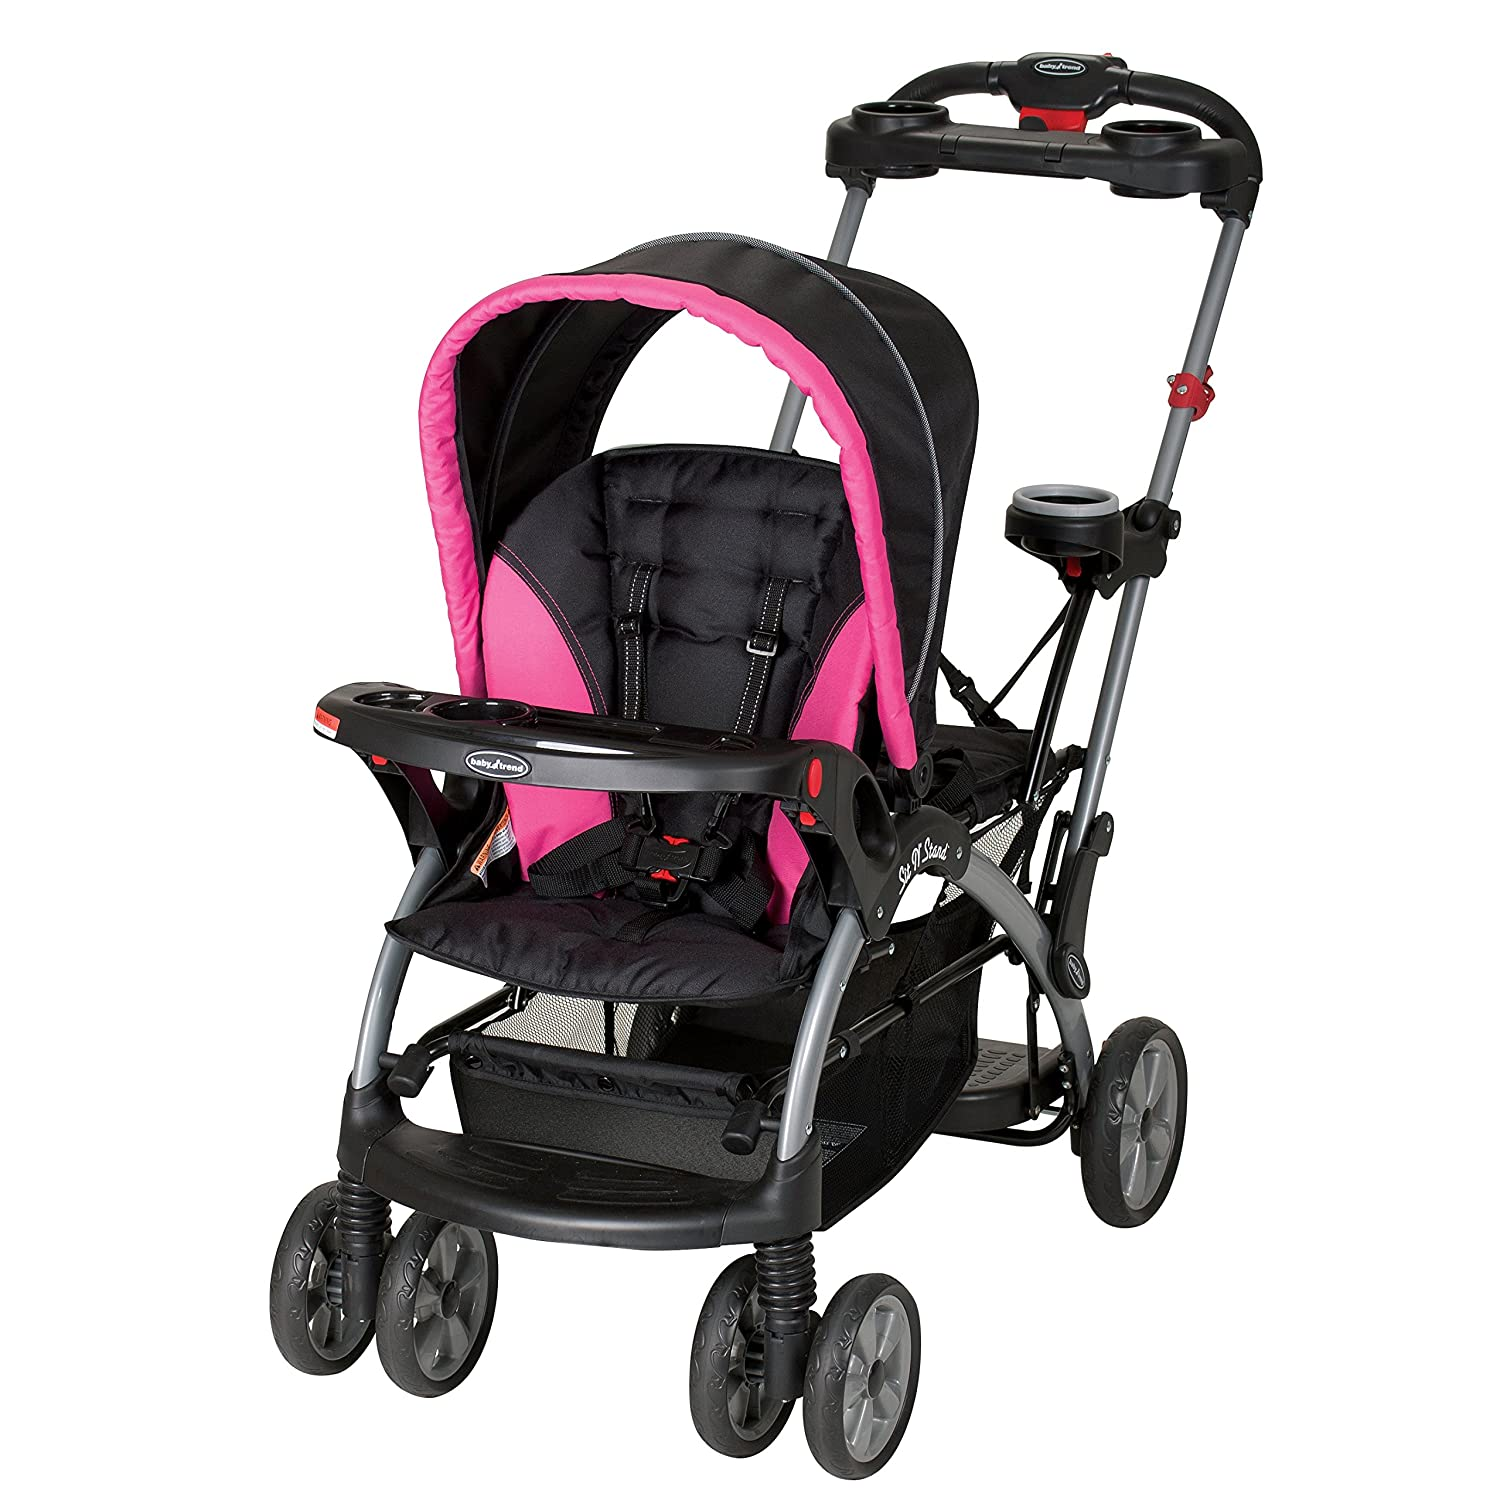 Amazon.com : Baby Trend Sit n Stand Ultra Stroller, Bubble Gum : Baby